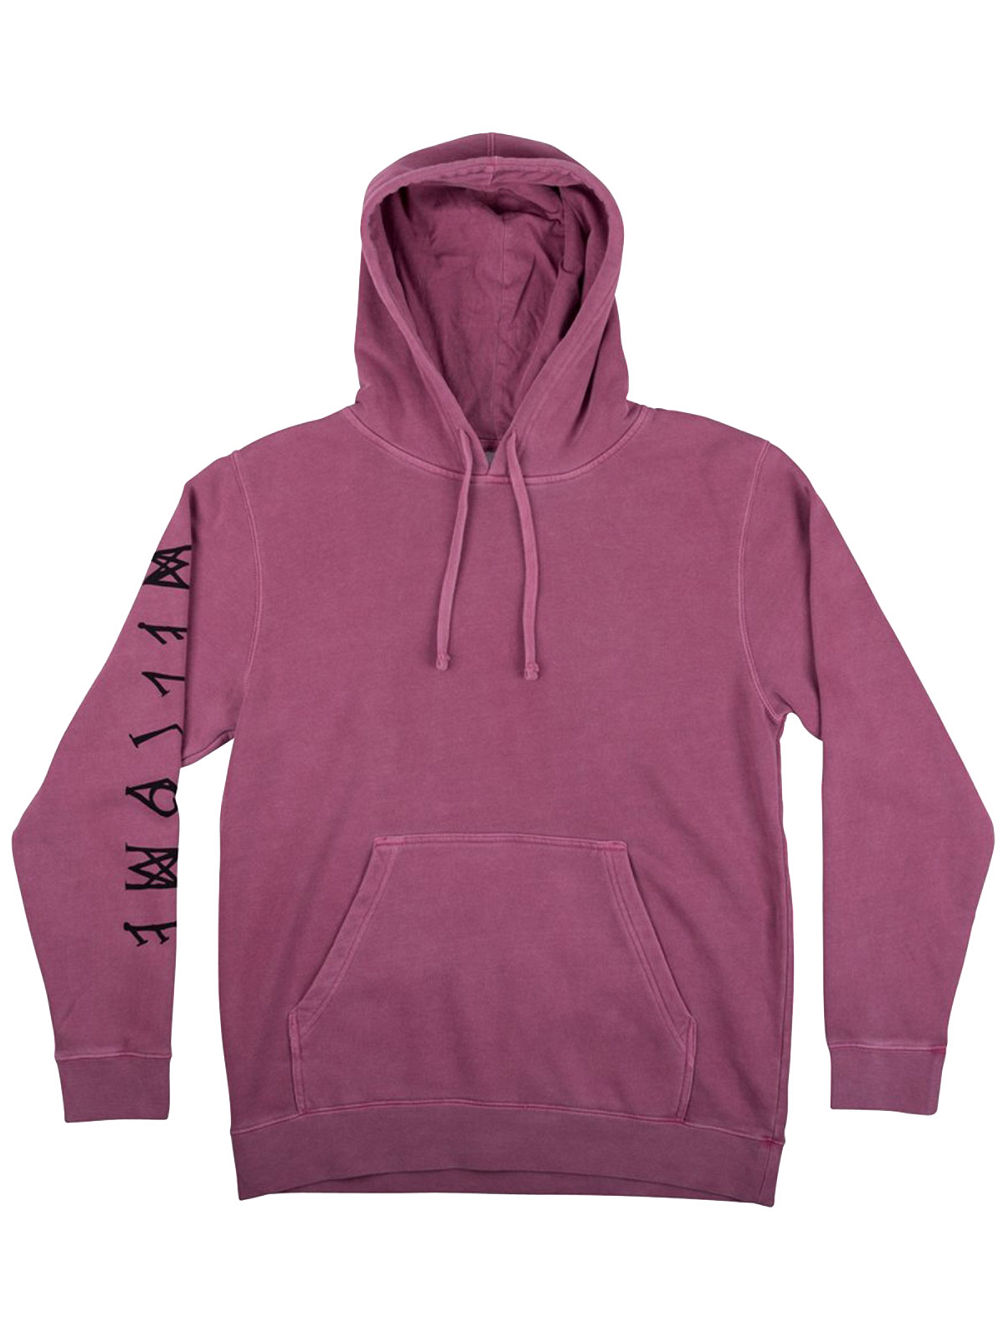 Tali Scrawl Pigment Dyed Hoodie